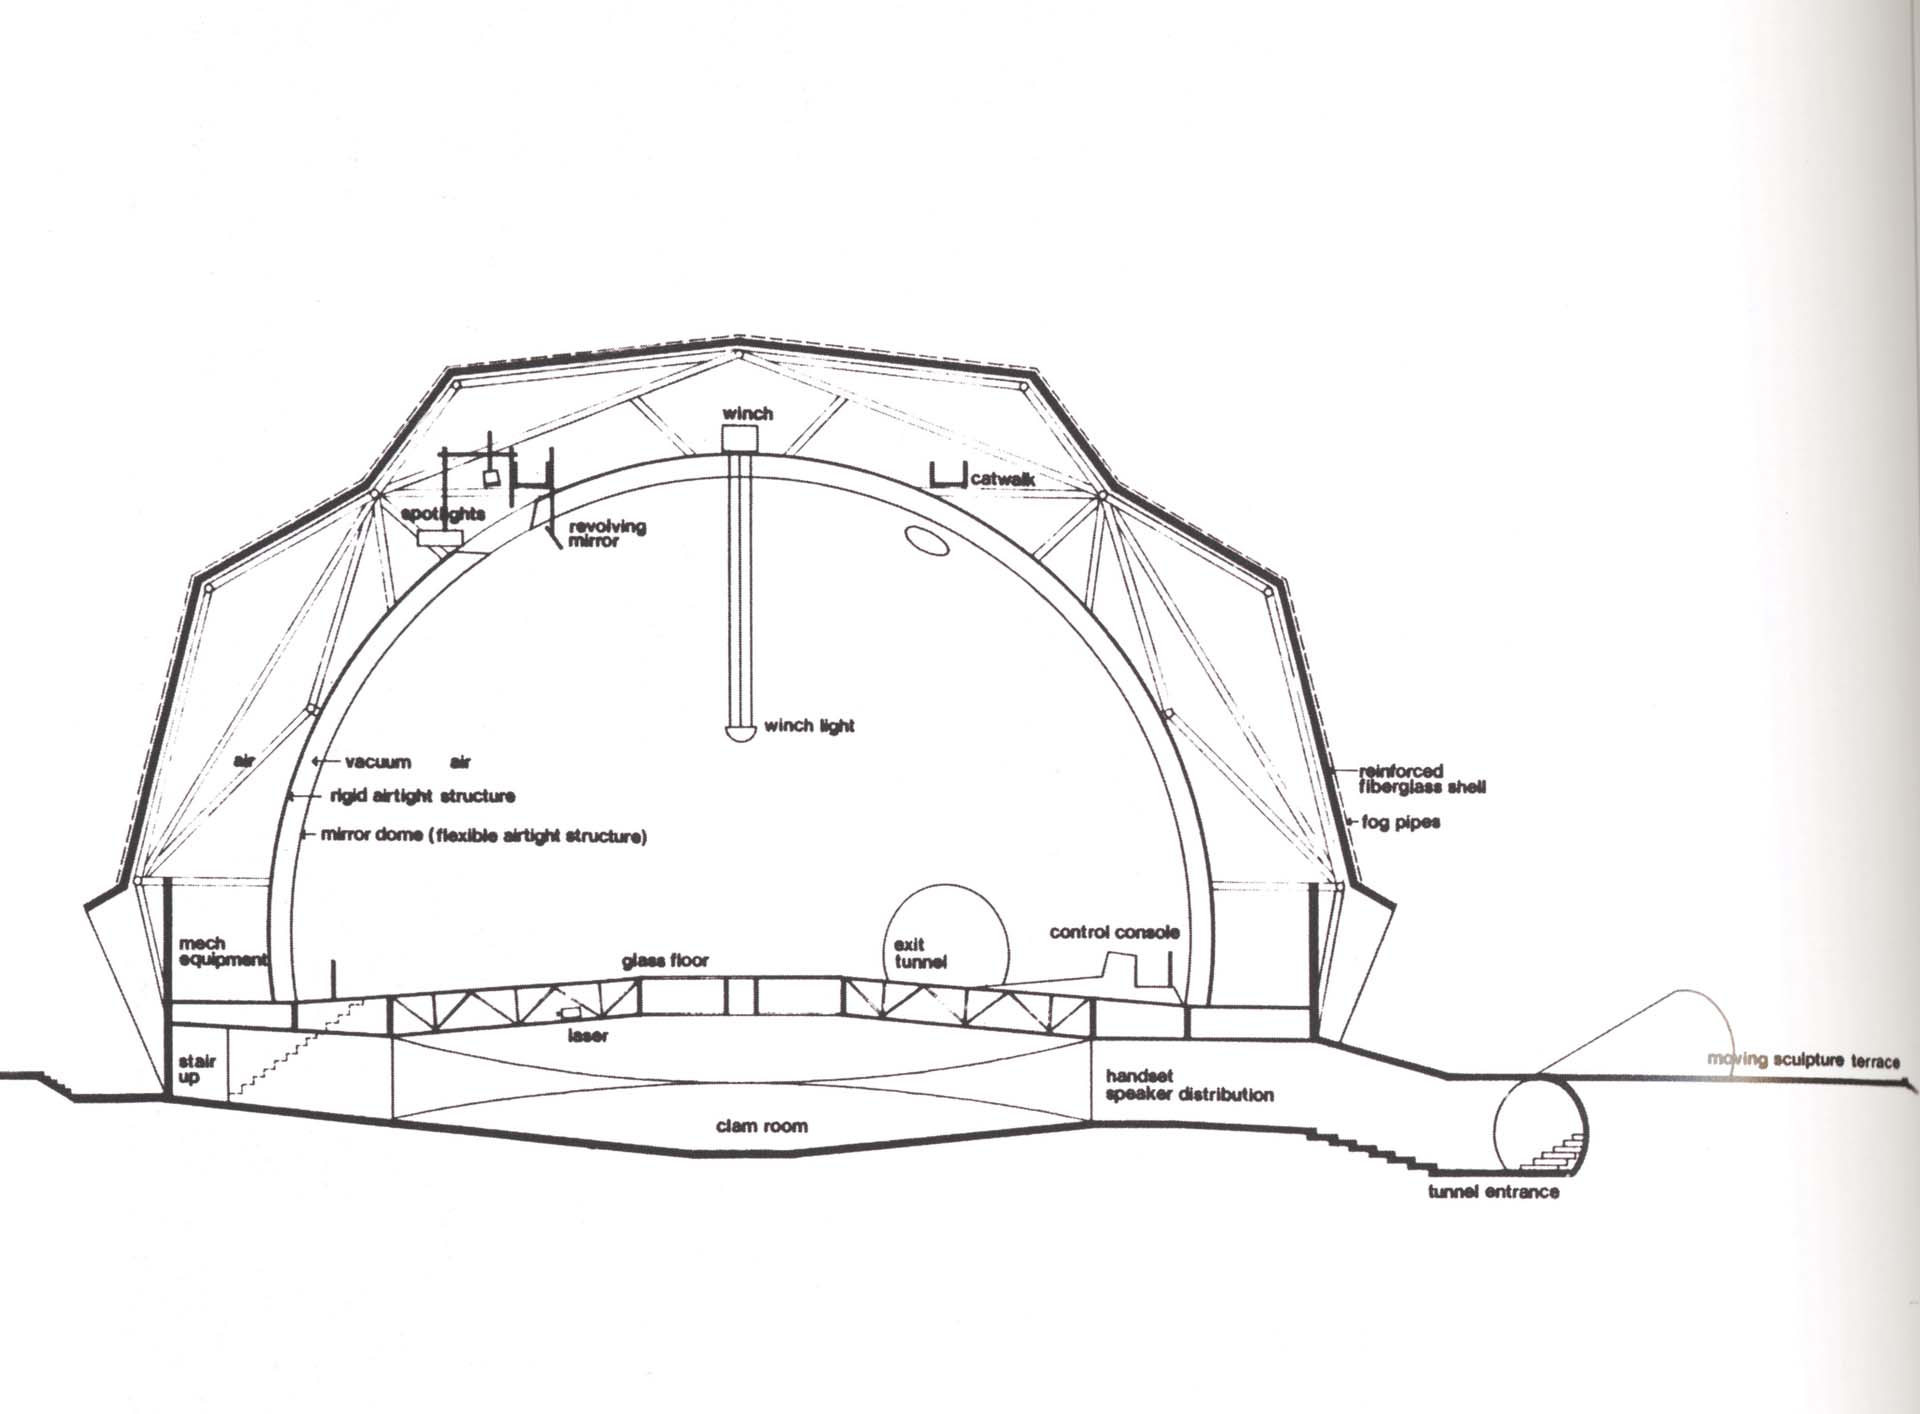 Schematic Diagram Of The Pavilion Showing Entrance Tunnel Clam Room And